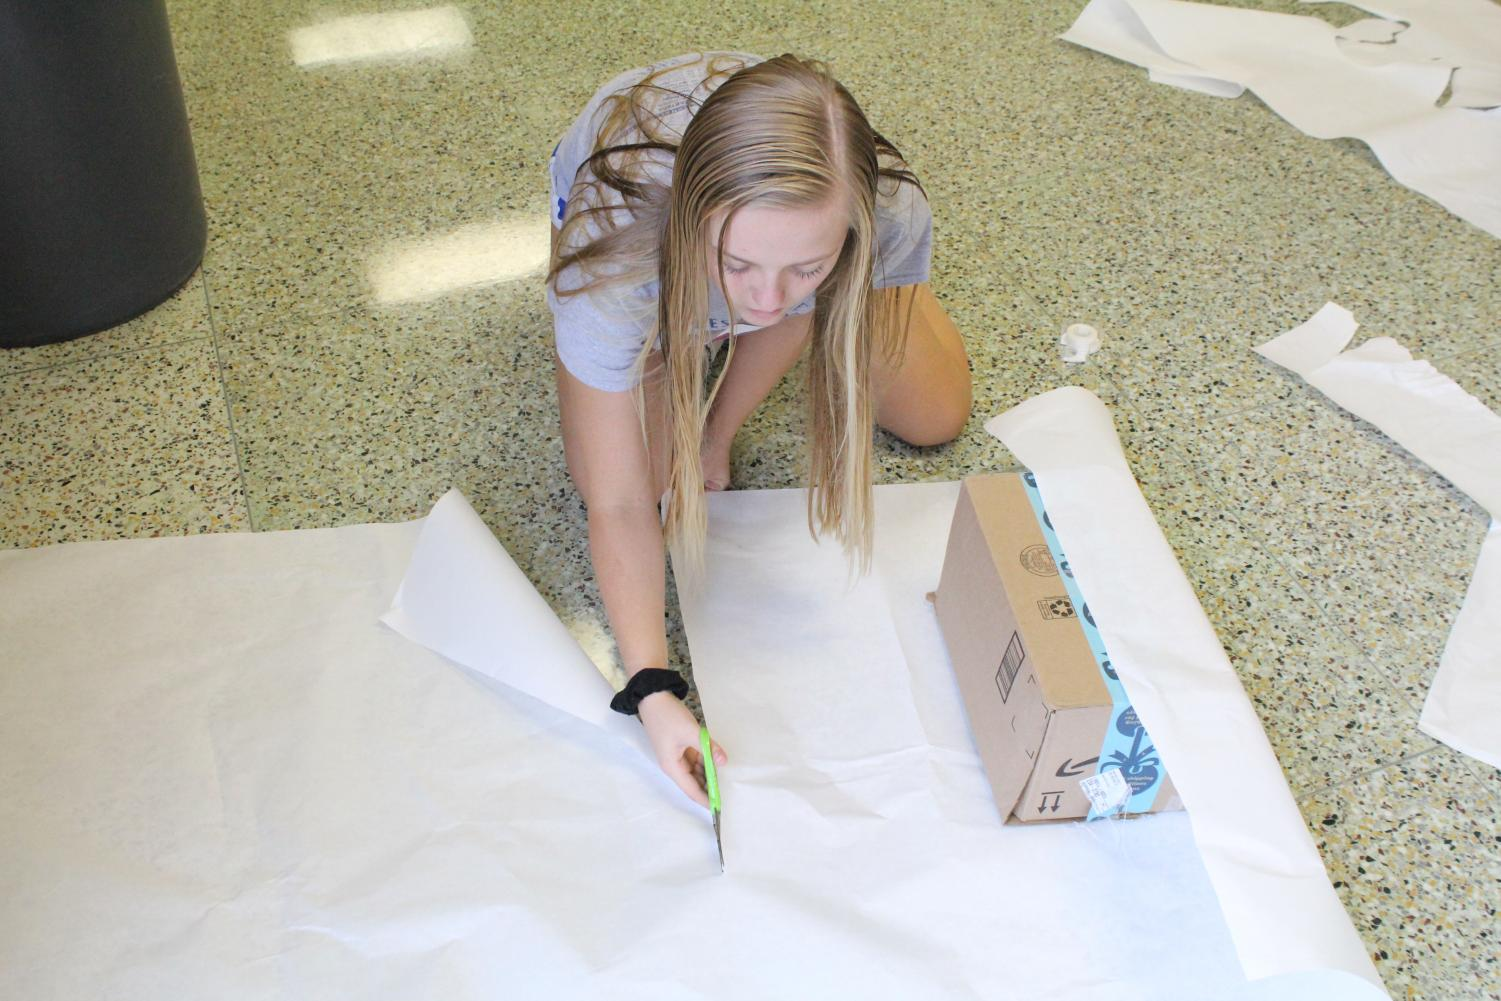 Wrapping a present for the Winter- themed hallway, sophomore Kylinne Meyers cuts off a piece of white paper at homecoming decorating.